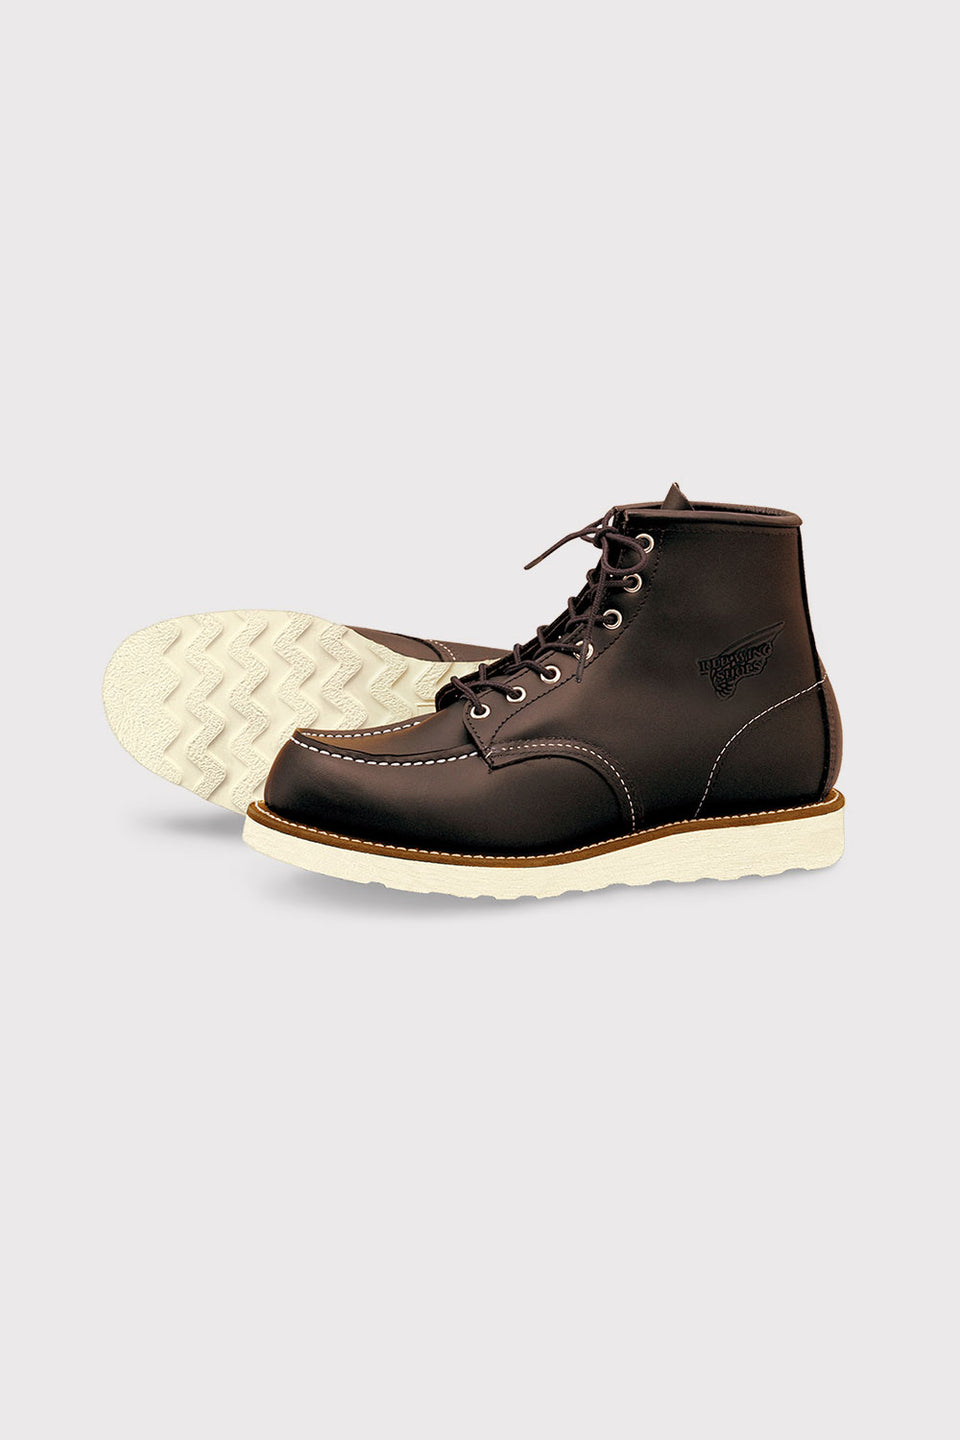 Classic Moc Toe Charcoal Rough